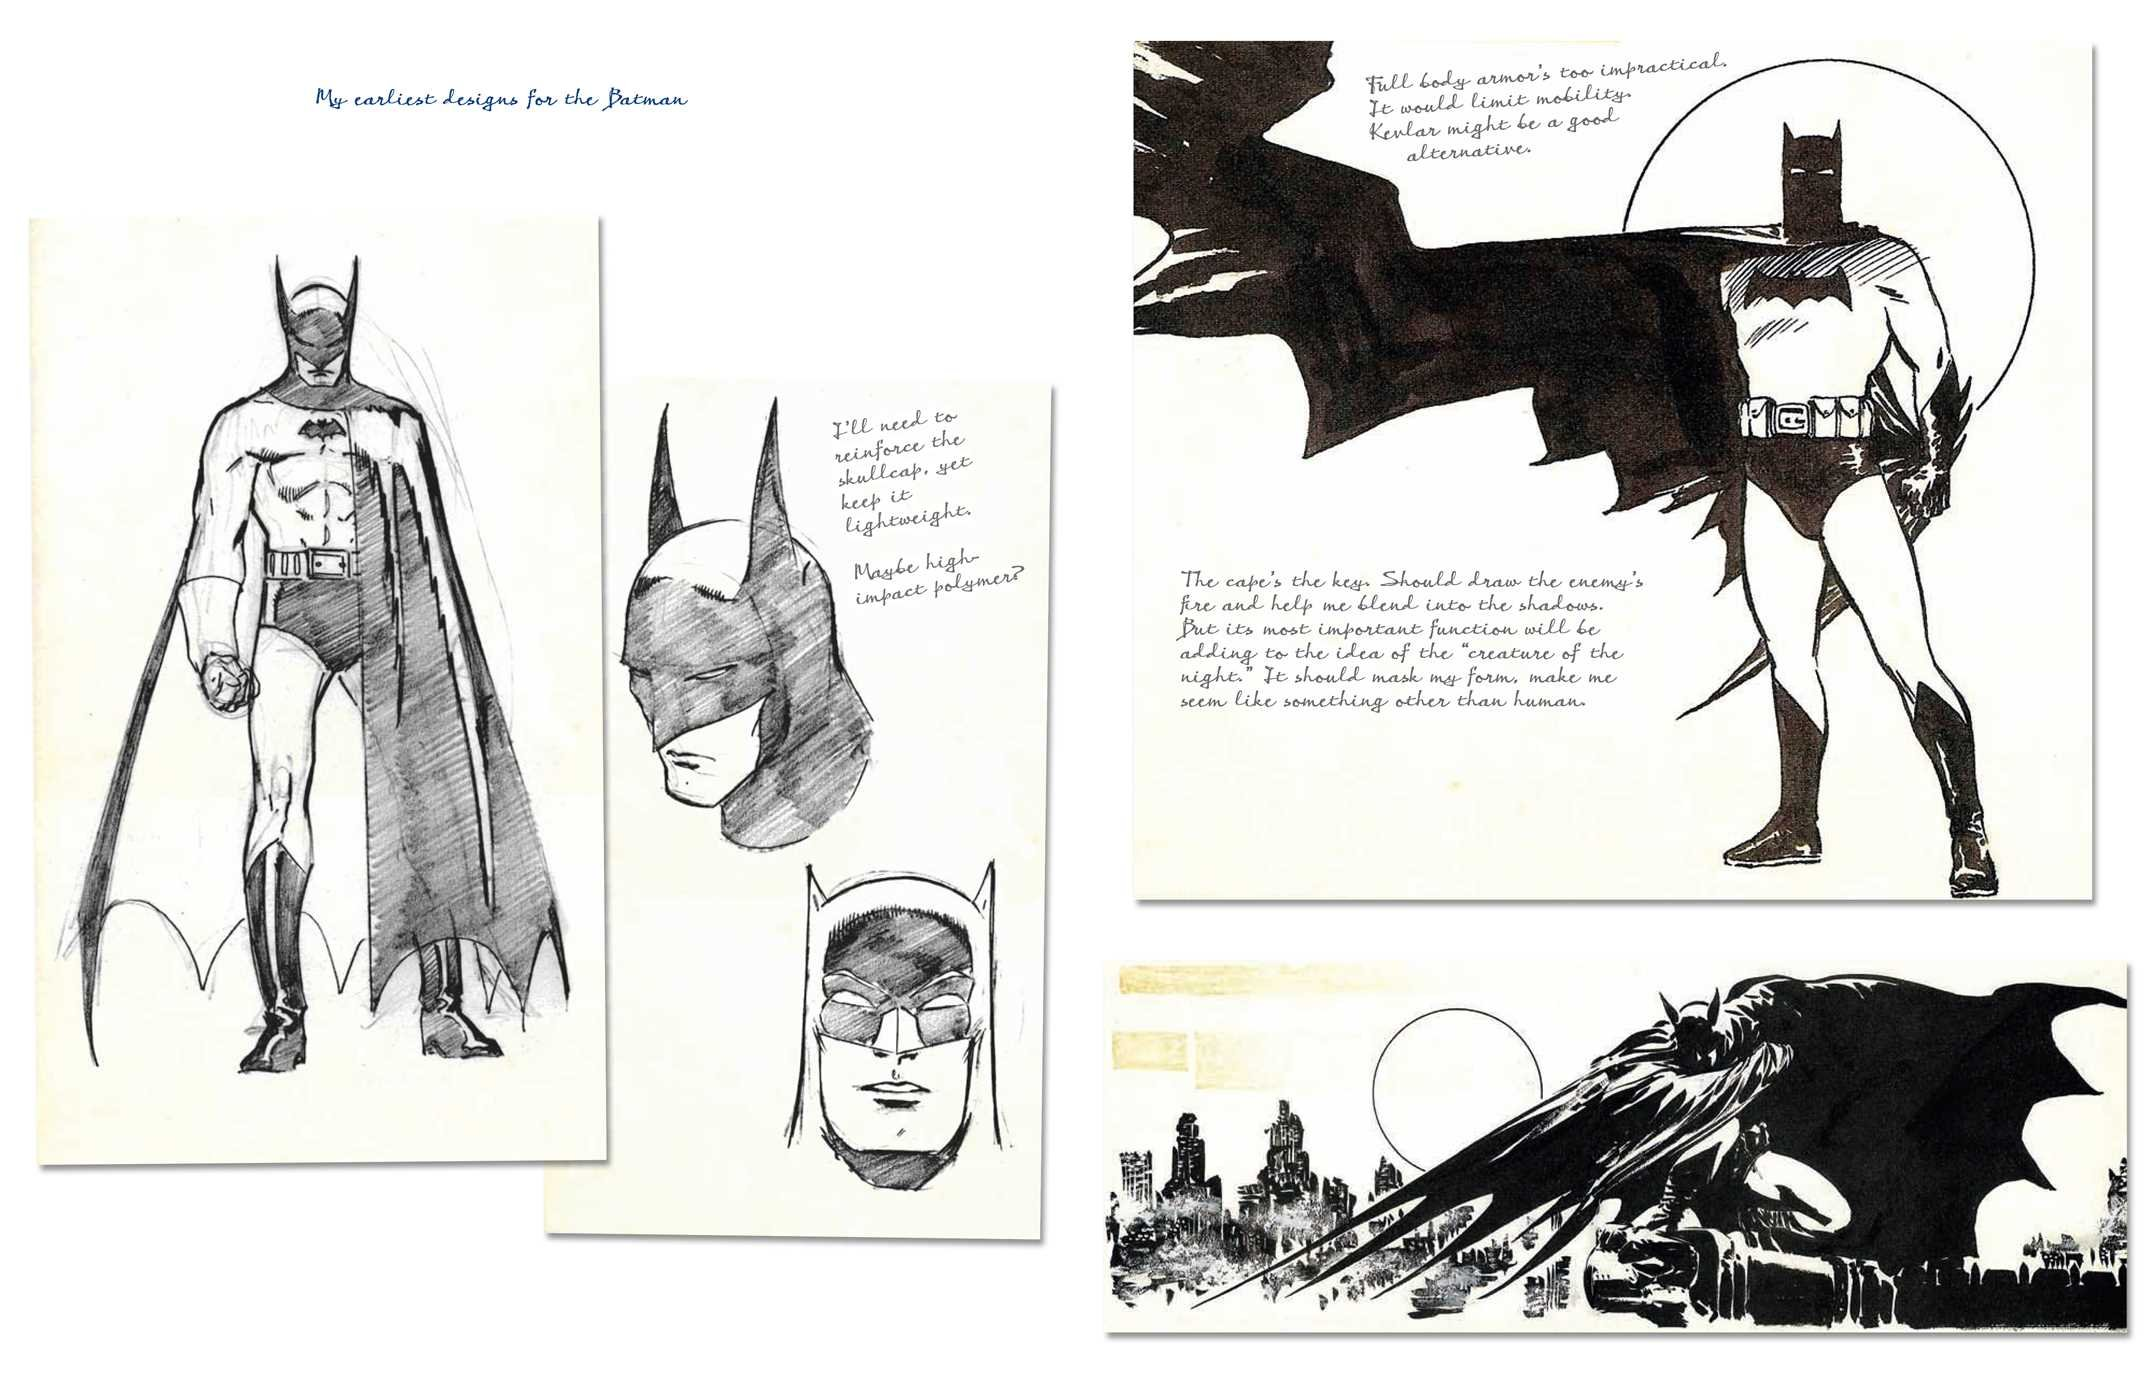 The Batman Files: Amazon.de: Matthew Manning: Fremdsprachige Bücher | {Französische küche comic 43}